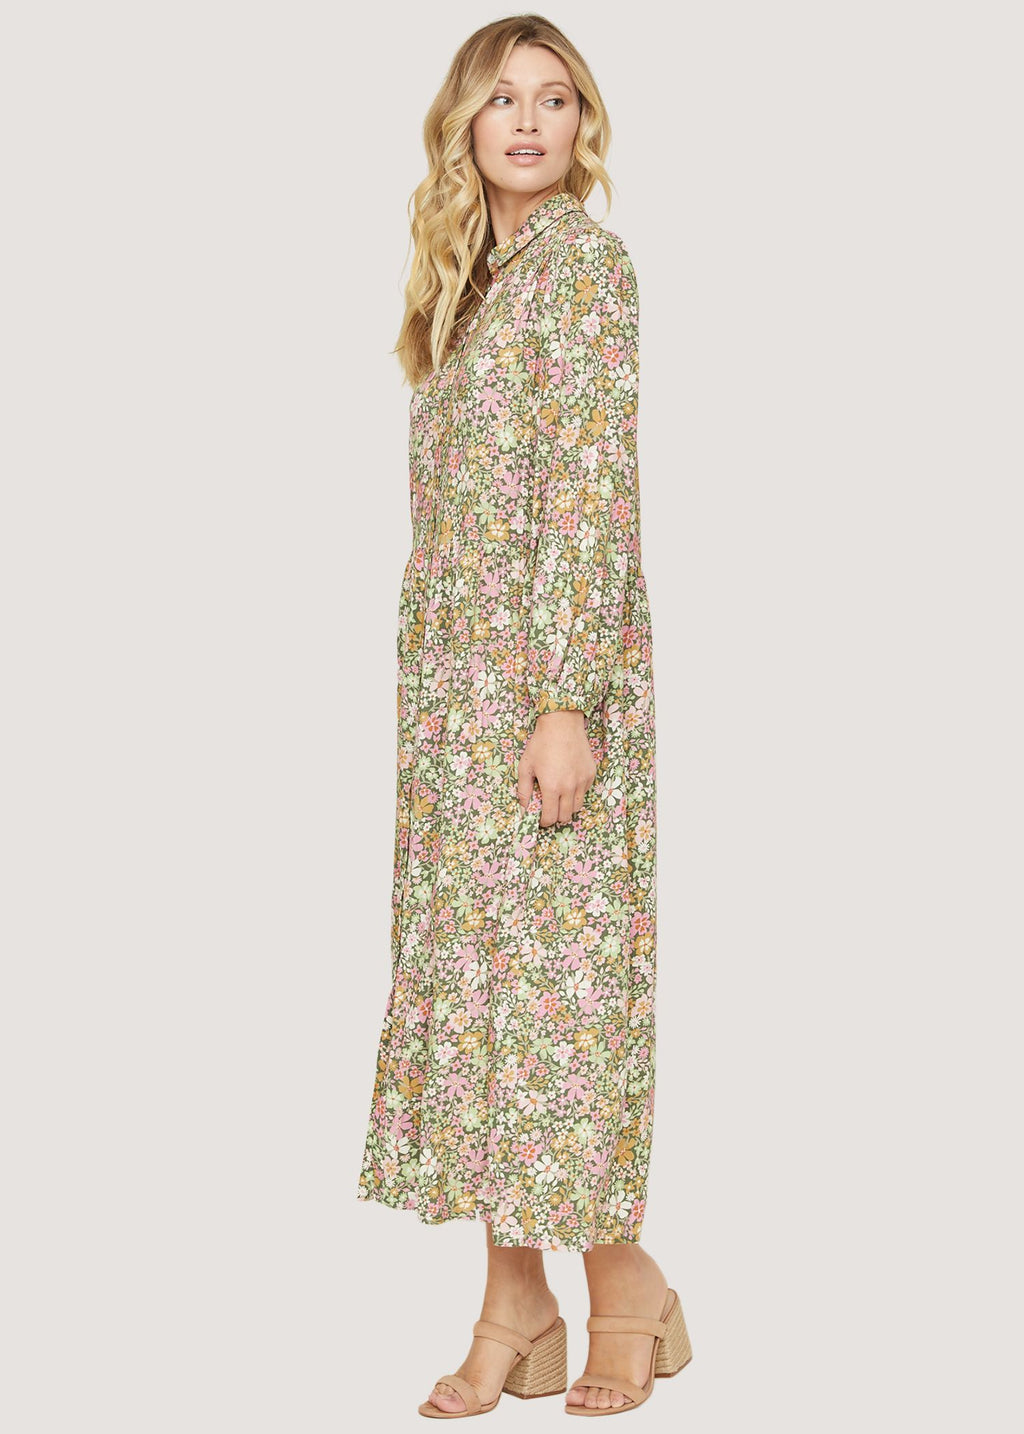 The Getaway Island Maxi Dress in Floral